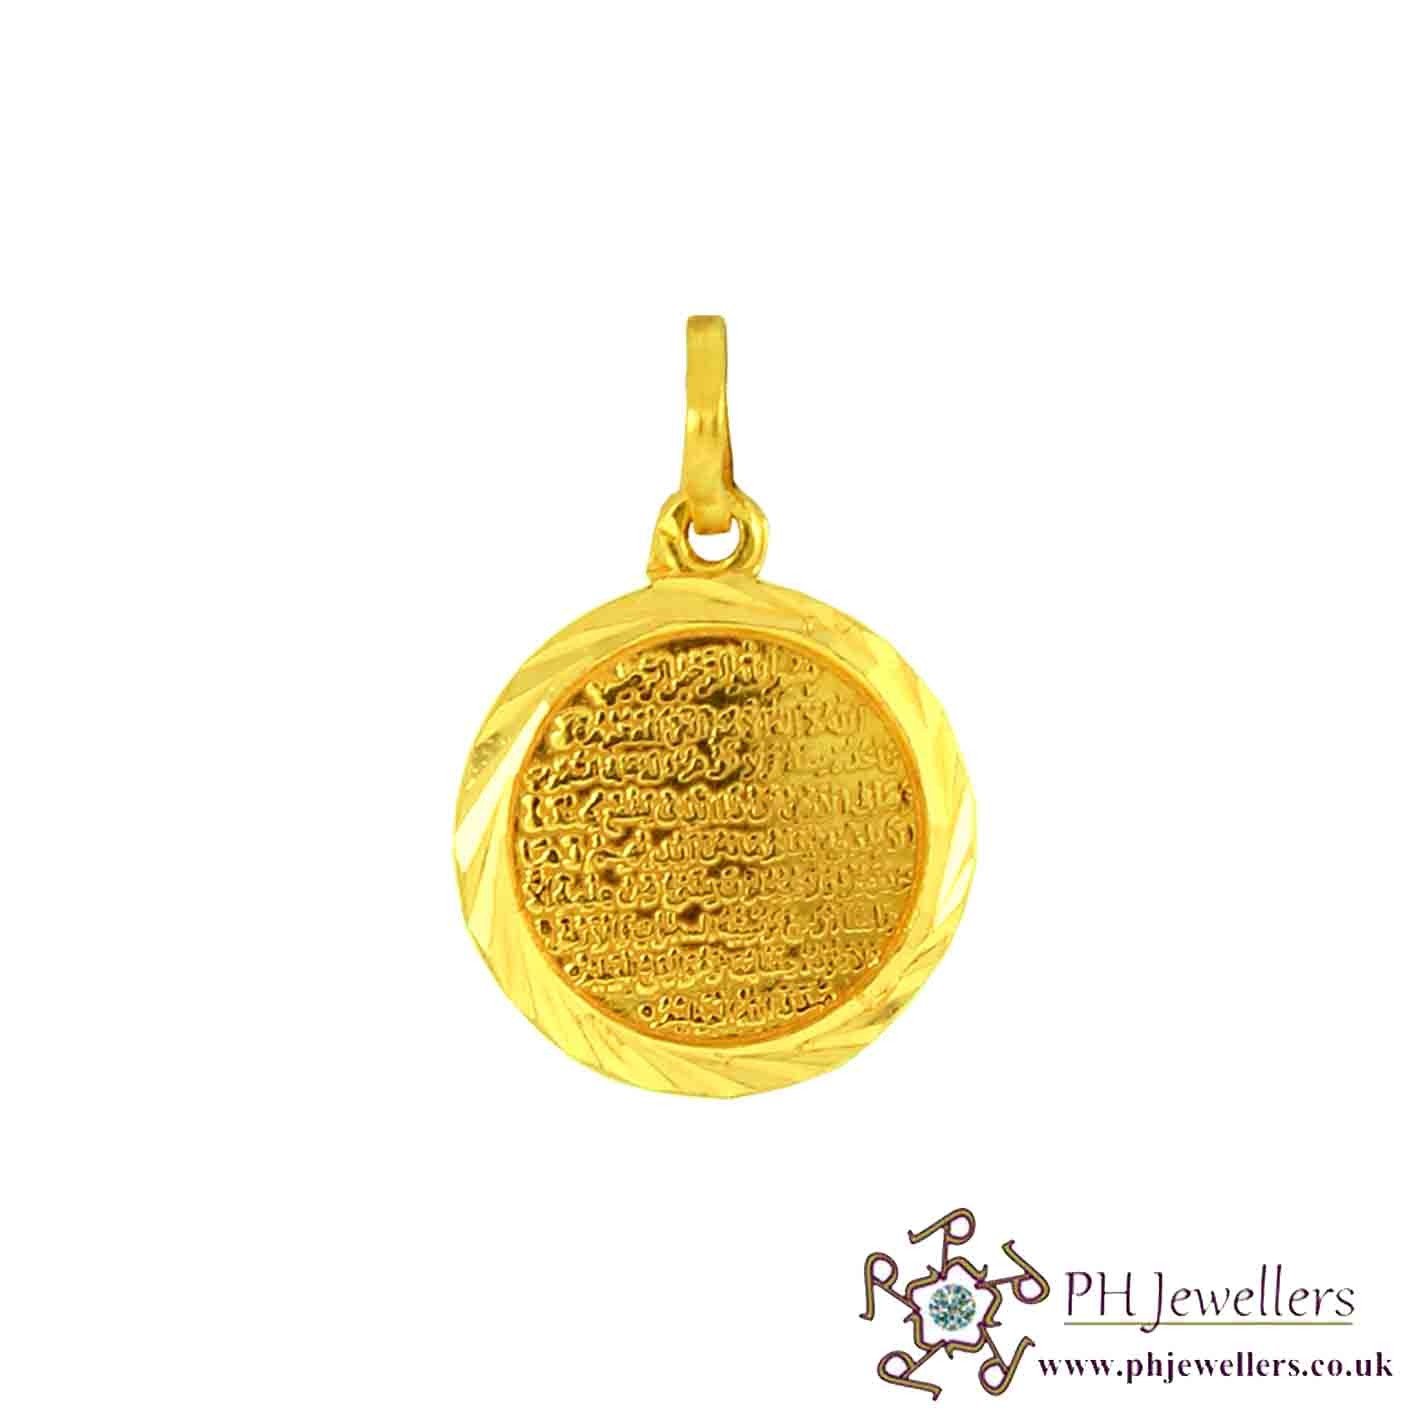 Online gold jewellery gold jewellery religious 22ct 916 hallmark online gold jewellery gold jewellery religious 22ct 916 hallmark yellow gold atal kursi pendant rp45 22 carat gold jewellers aloadofball Gallery